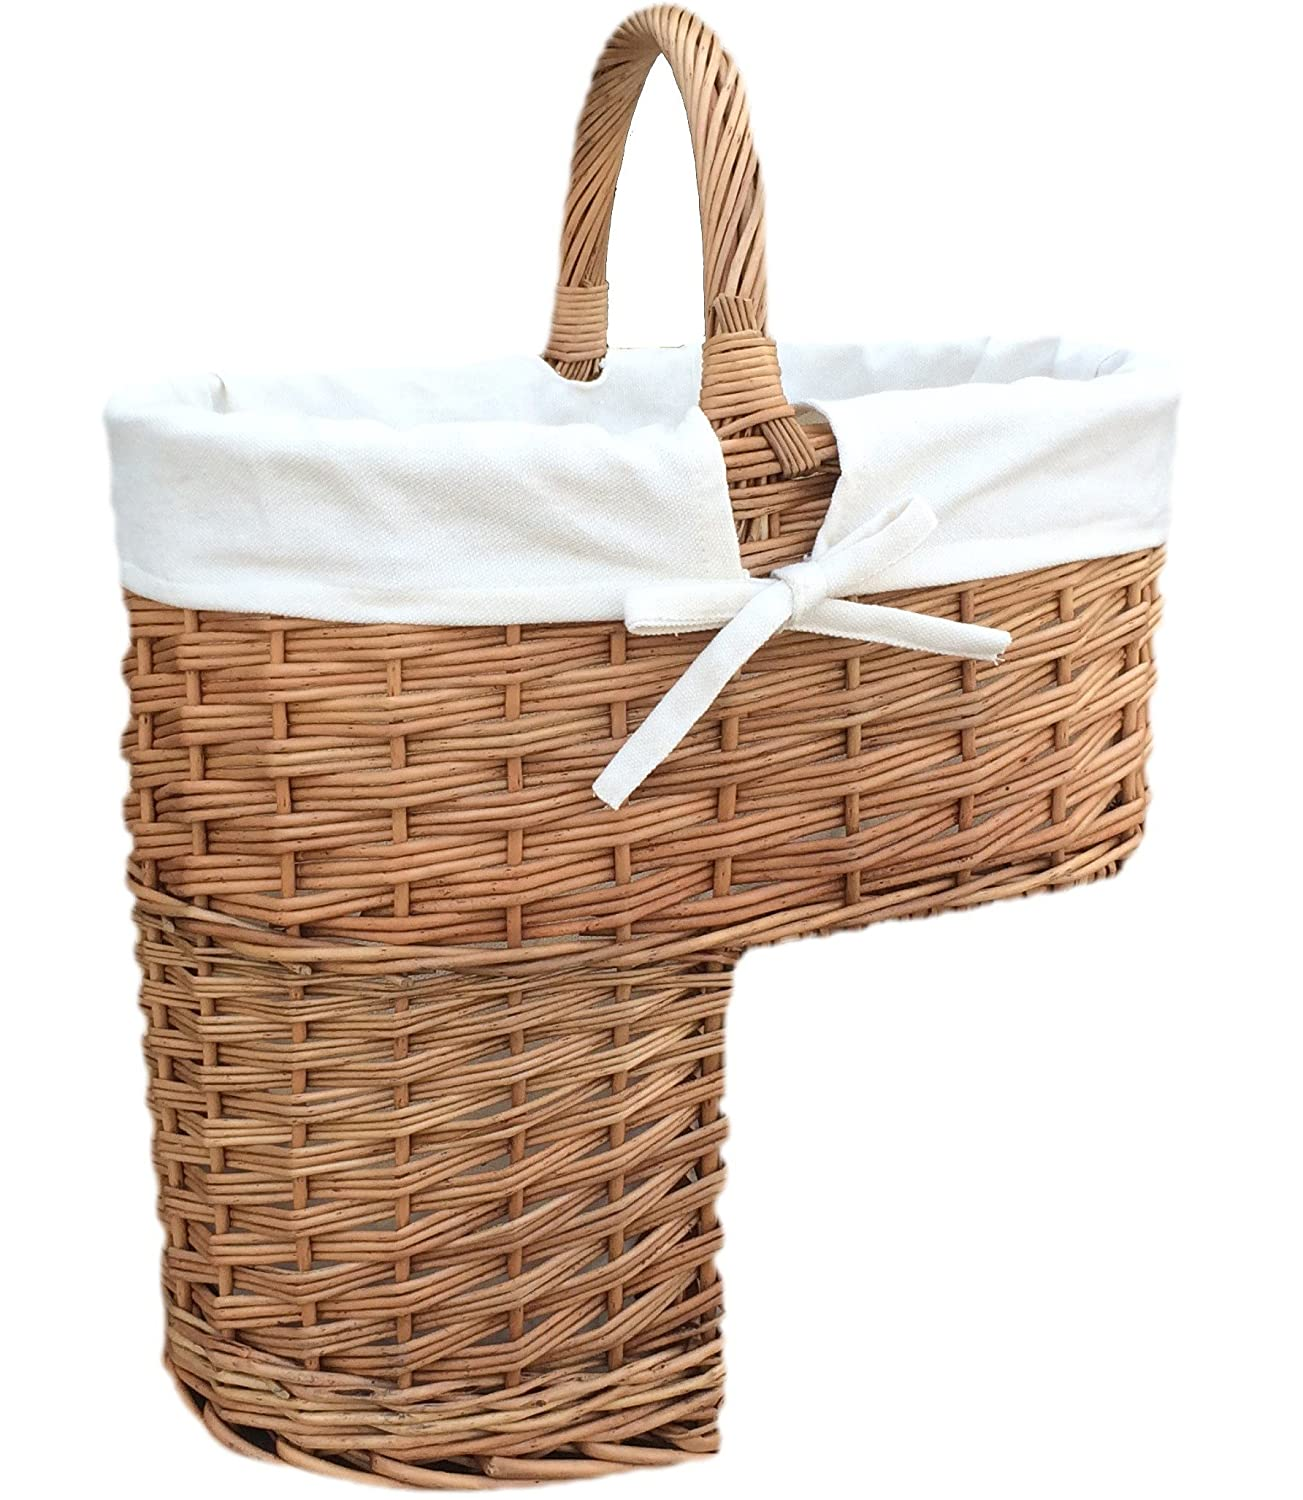 Double Steamed Willow Wicker Stair Step Basket Natural Lining Choice Baskets